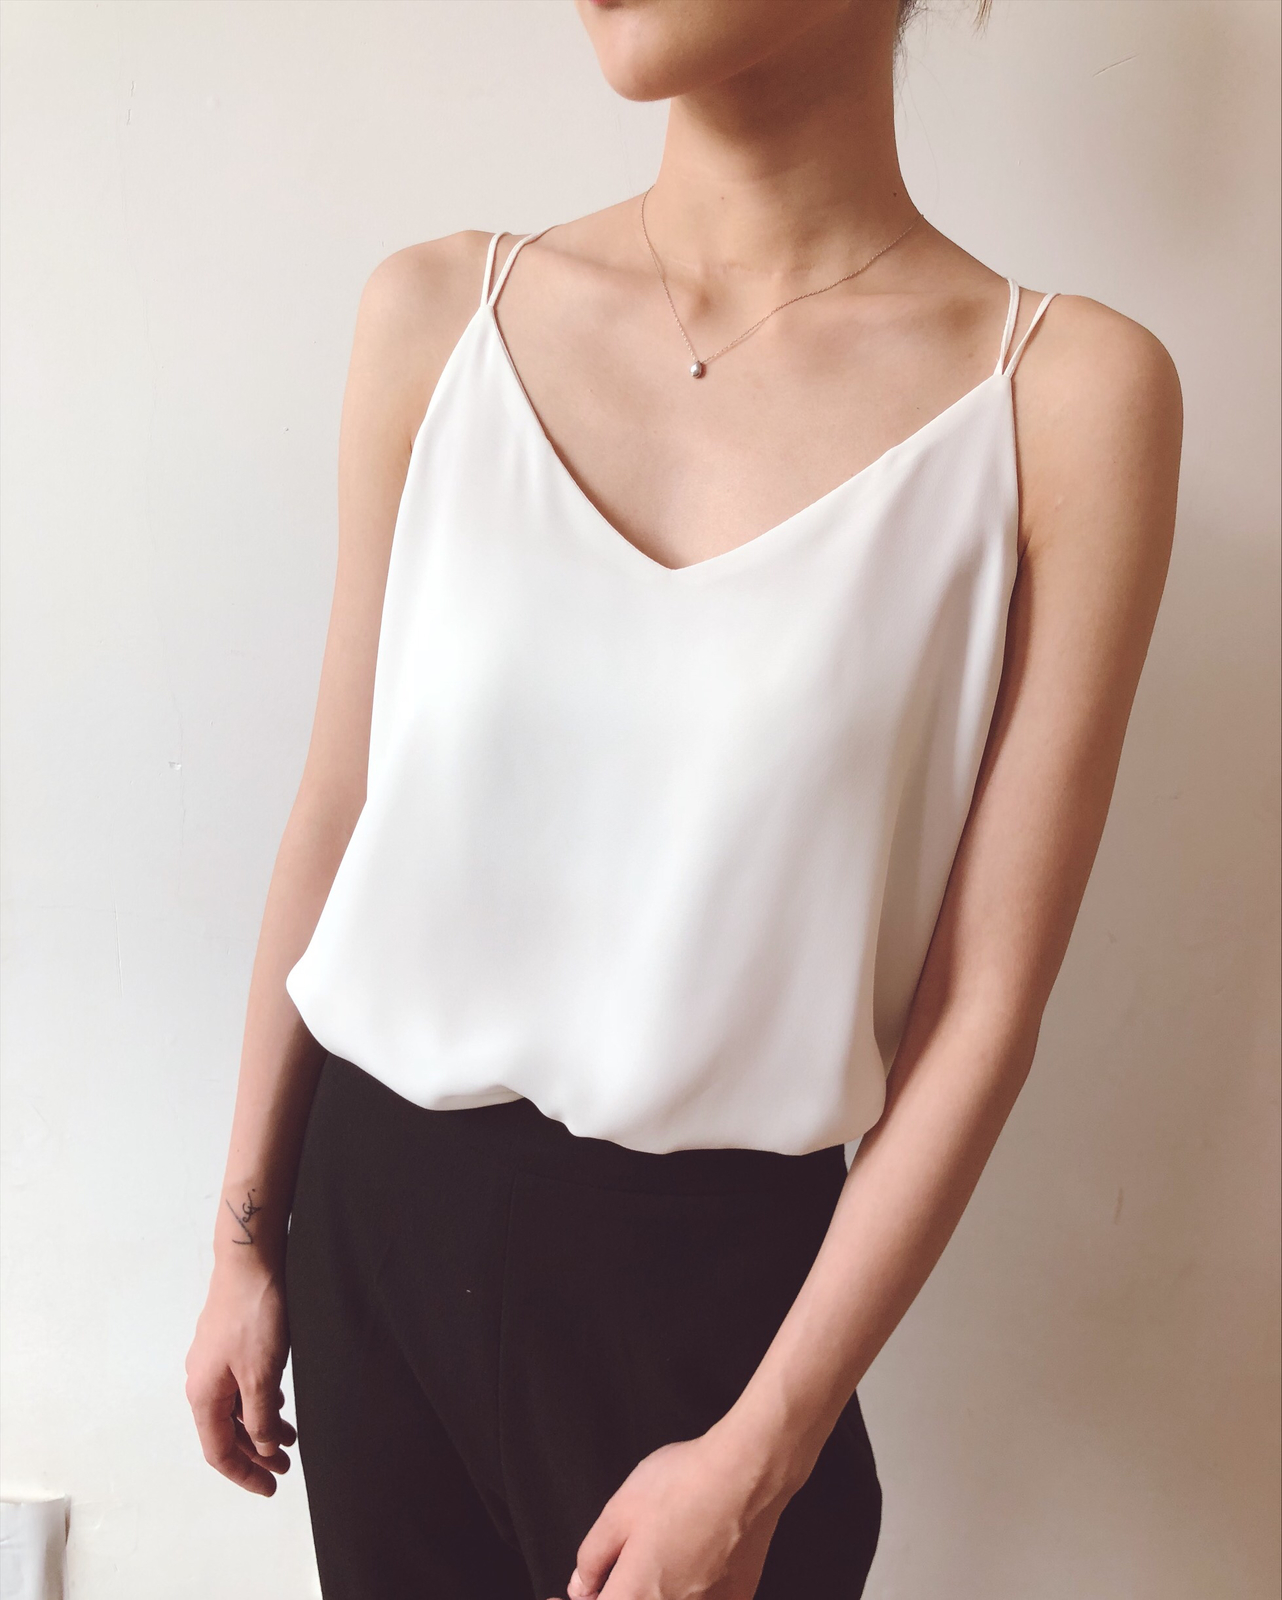 WHITE Summer Chiffon Top Sleeveless V-Neck Chiffon Tank Wedding Bridesmaid Tops